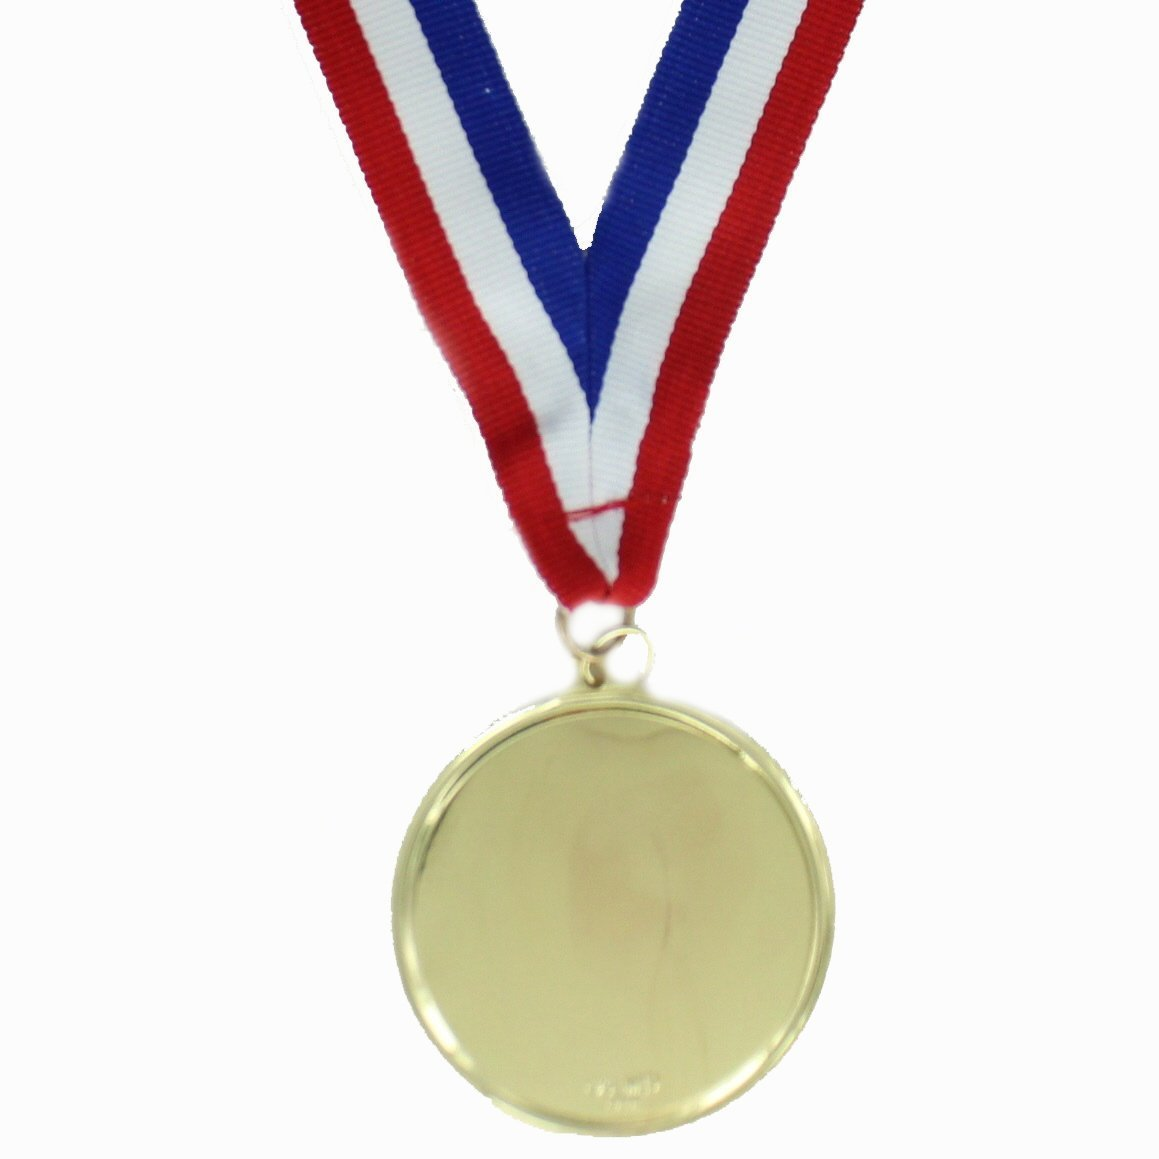 Principal's Award Medal Comes with Neck Ribbon - Pack of 12